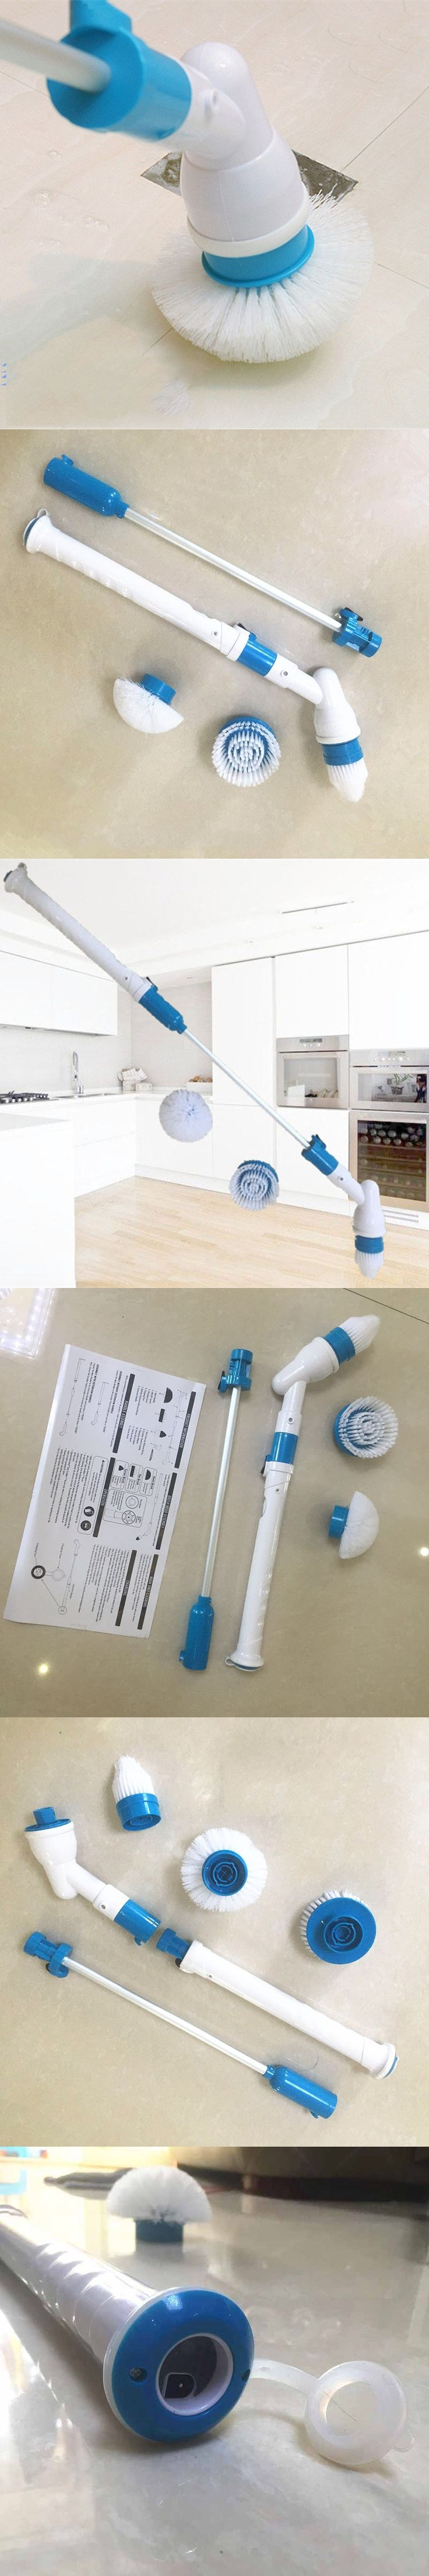 Electric Clean Brush Wireless Hurricane Charge Cleaning Brush Home Bathtub Floor Auto Revolving Mop ABS resin and silica gel